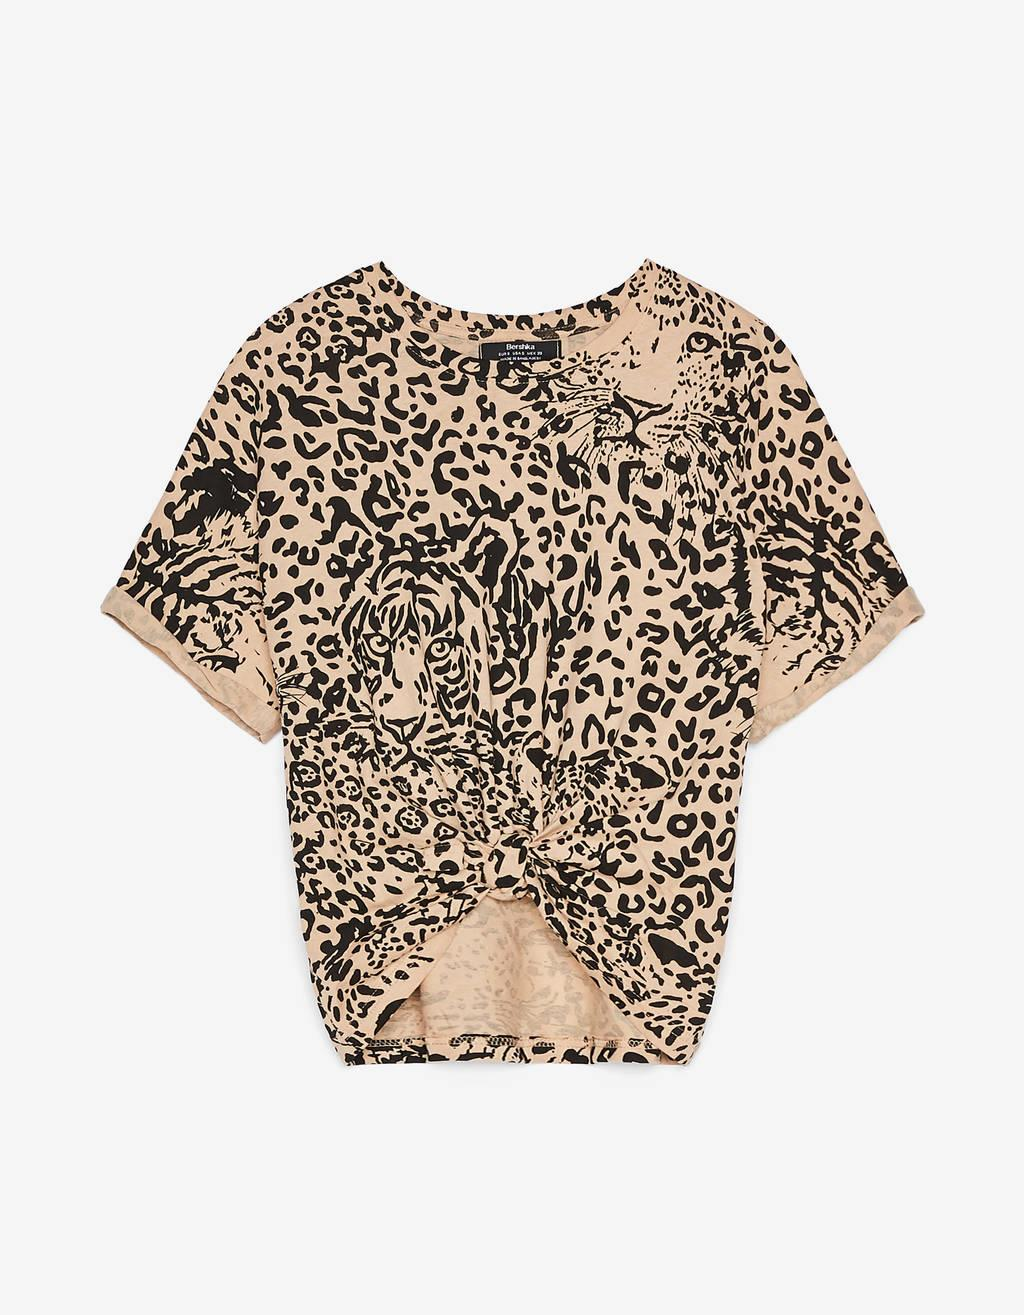 Estampado 'animal print'